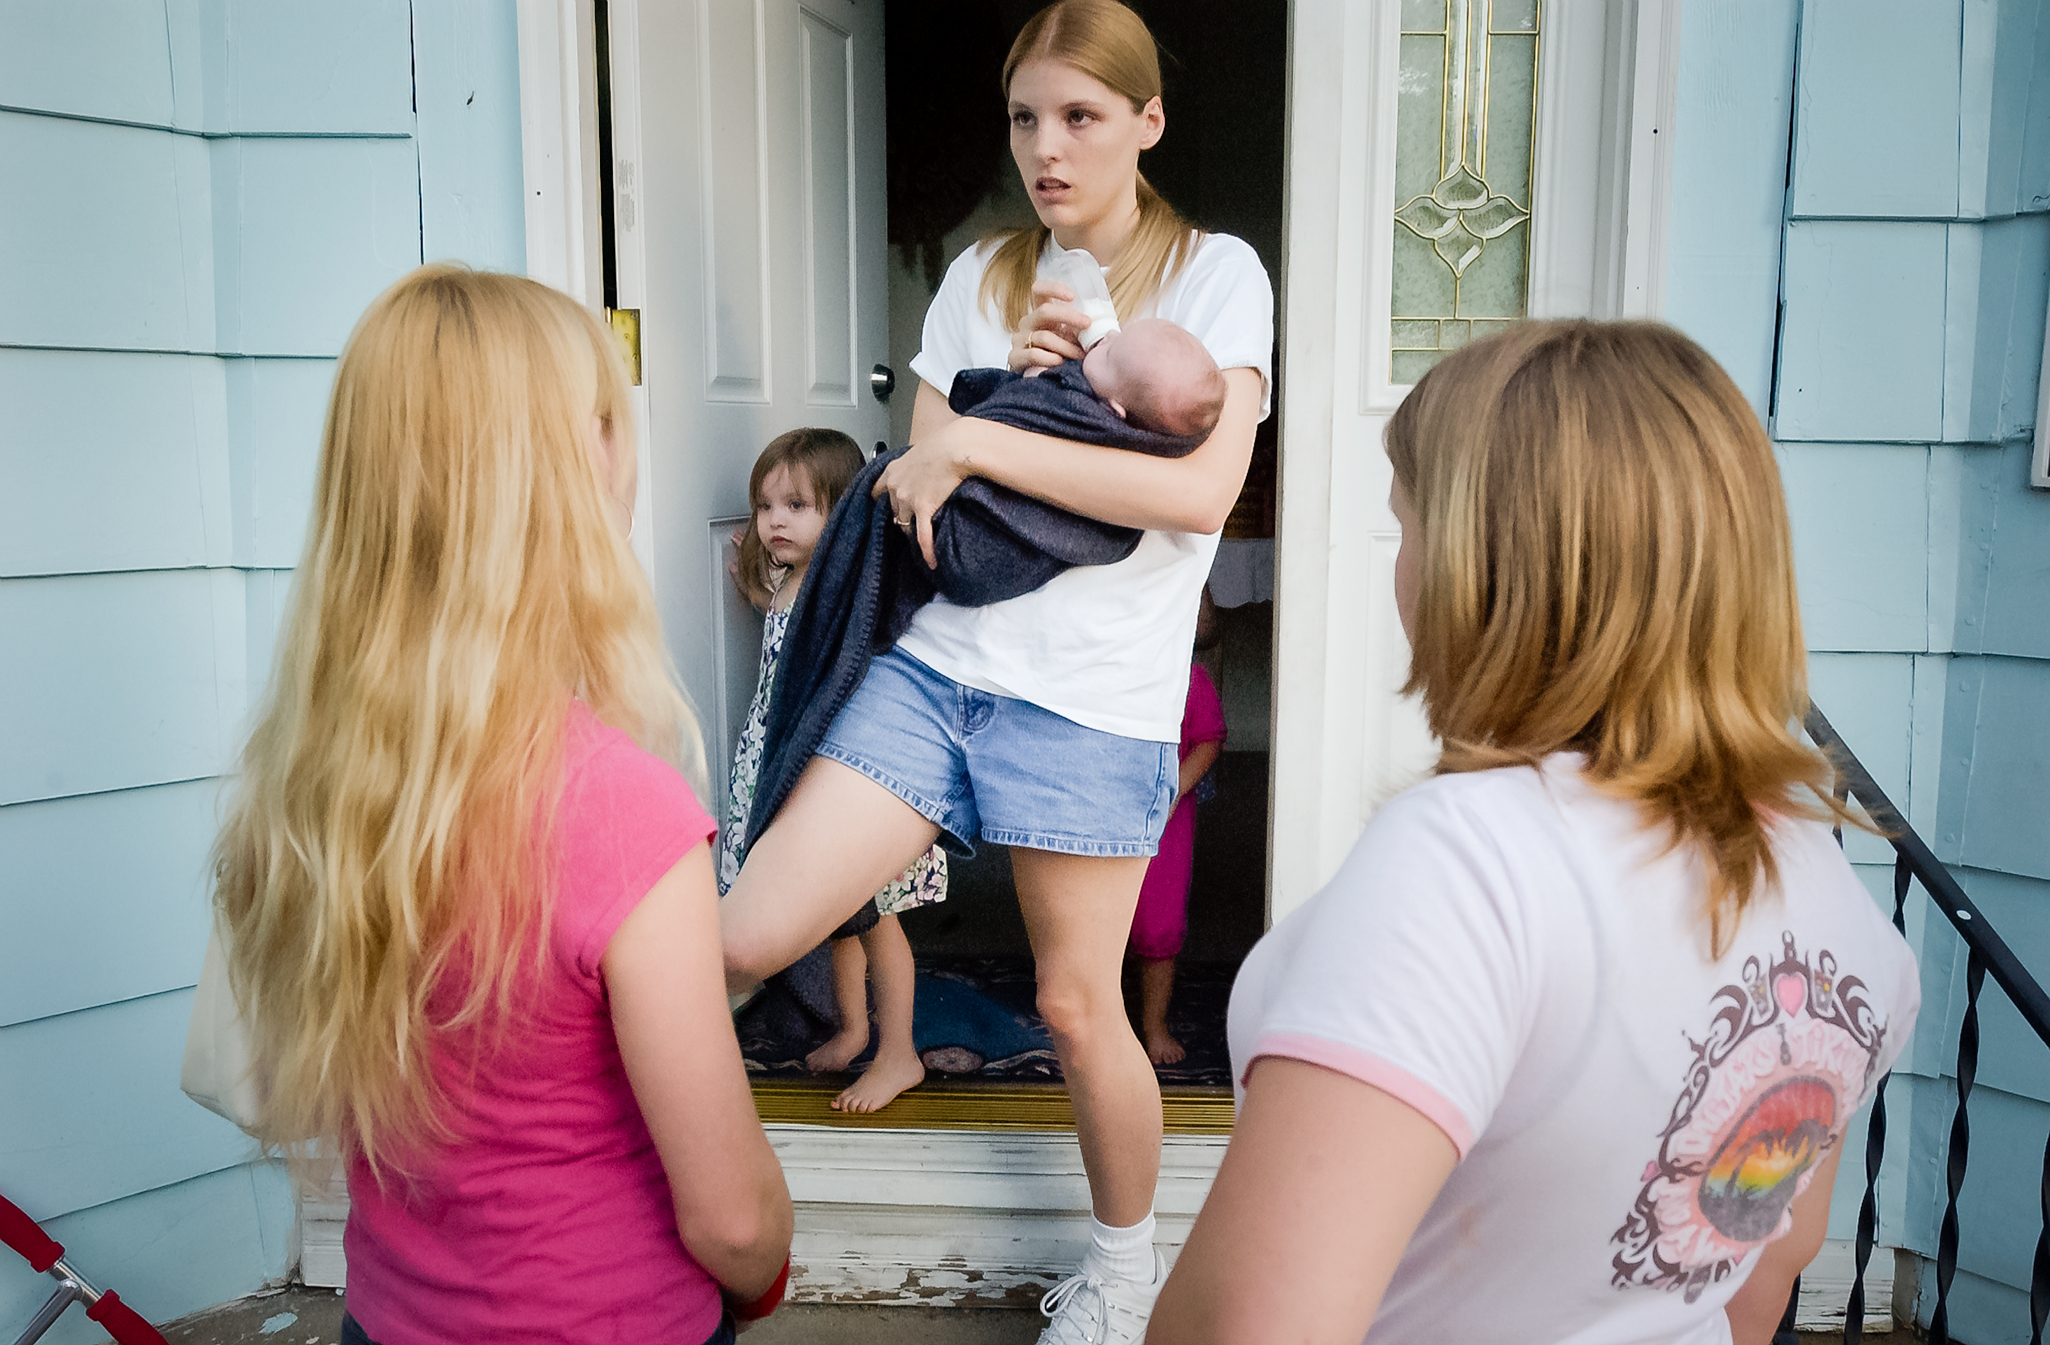 Spirit stops by Becky's house to exchange gossip. Becky, 23, is the former girlfriend of Spirit's brother. She has three children.